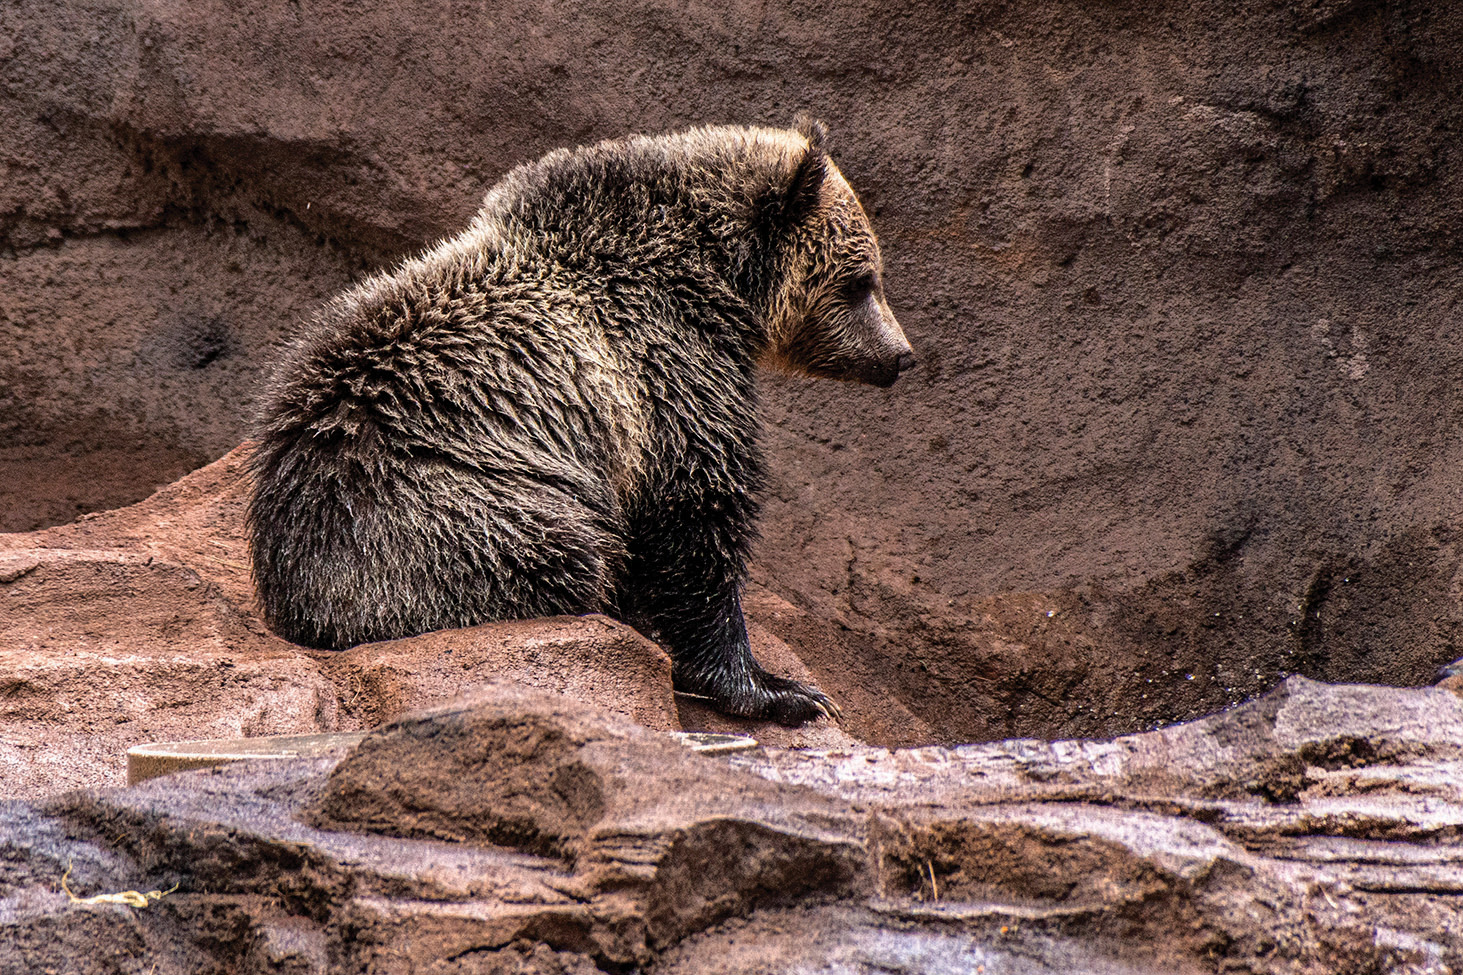 Grizzly Cub at Rest by Herman Dirks